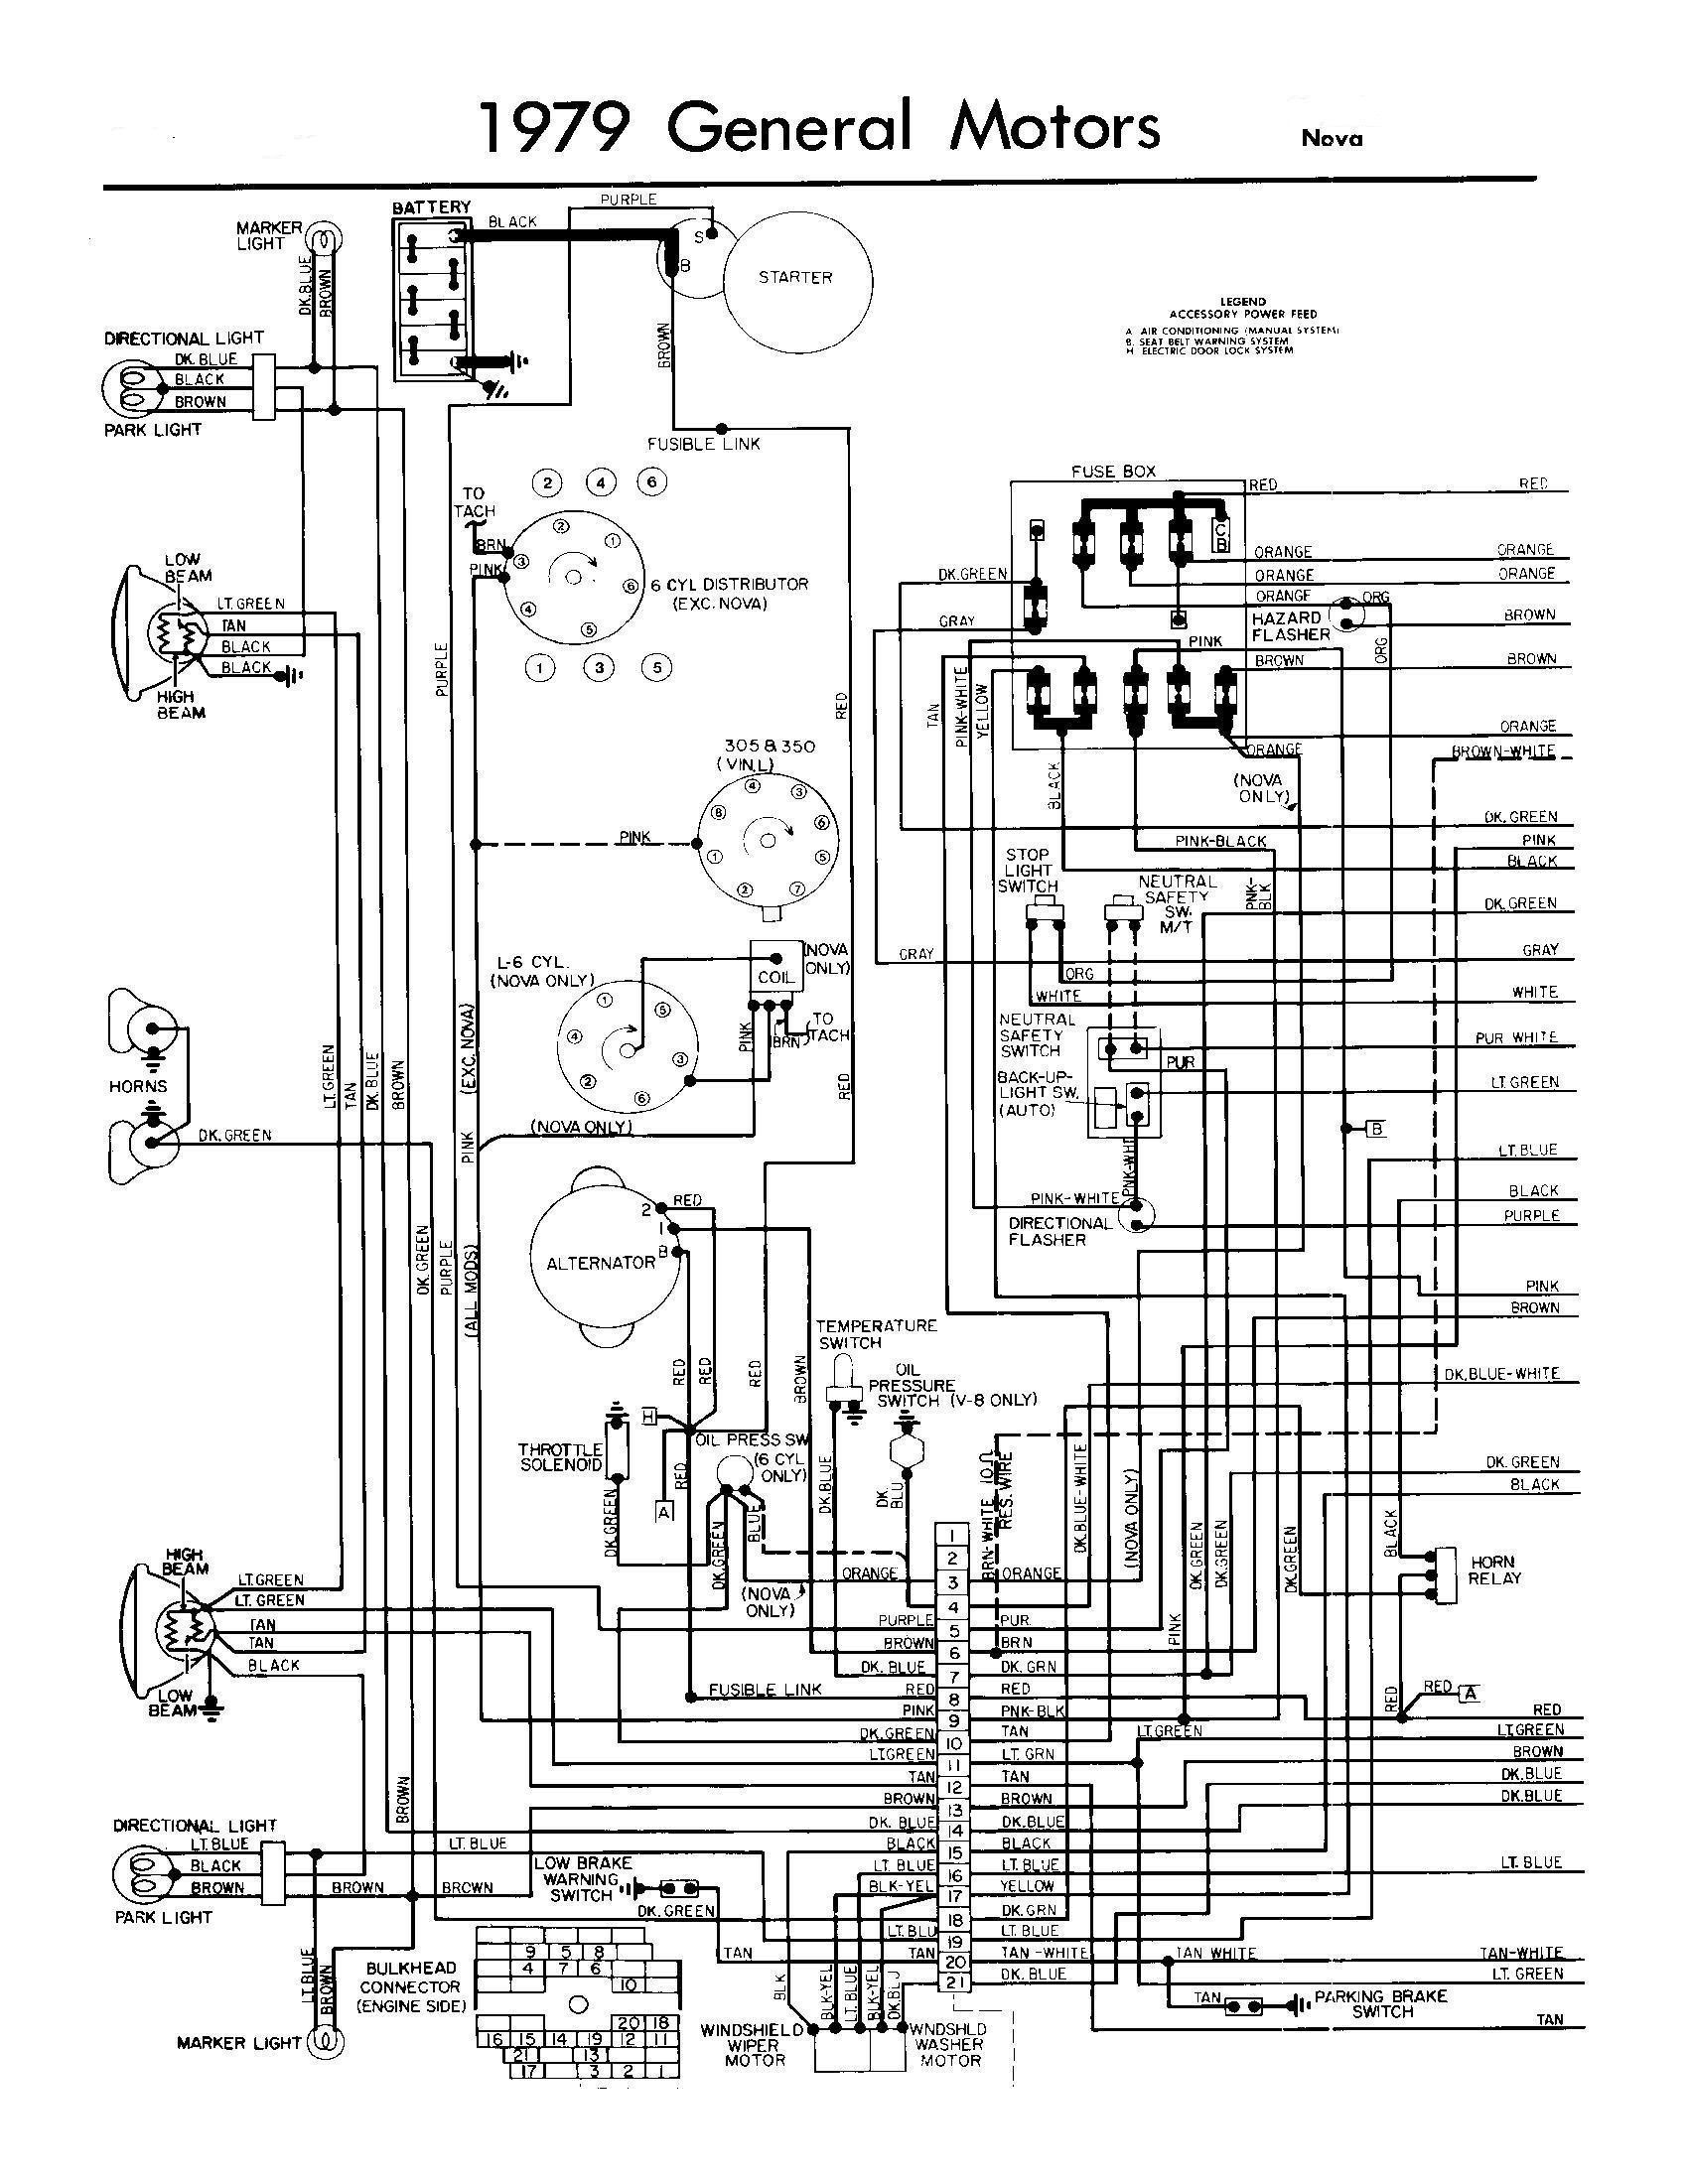 Fuse Box Wiring Diagrams Oldsmobile 1999 Aurora 88 Library Rh 6 Csu Lichtenhof De Diagram For Regency